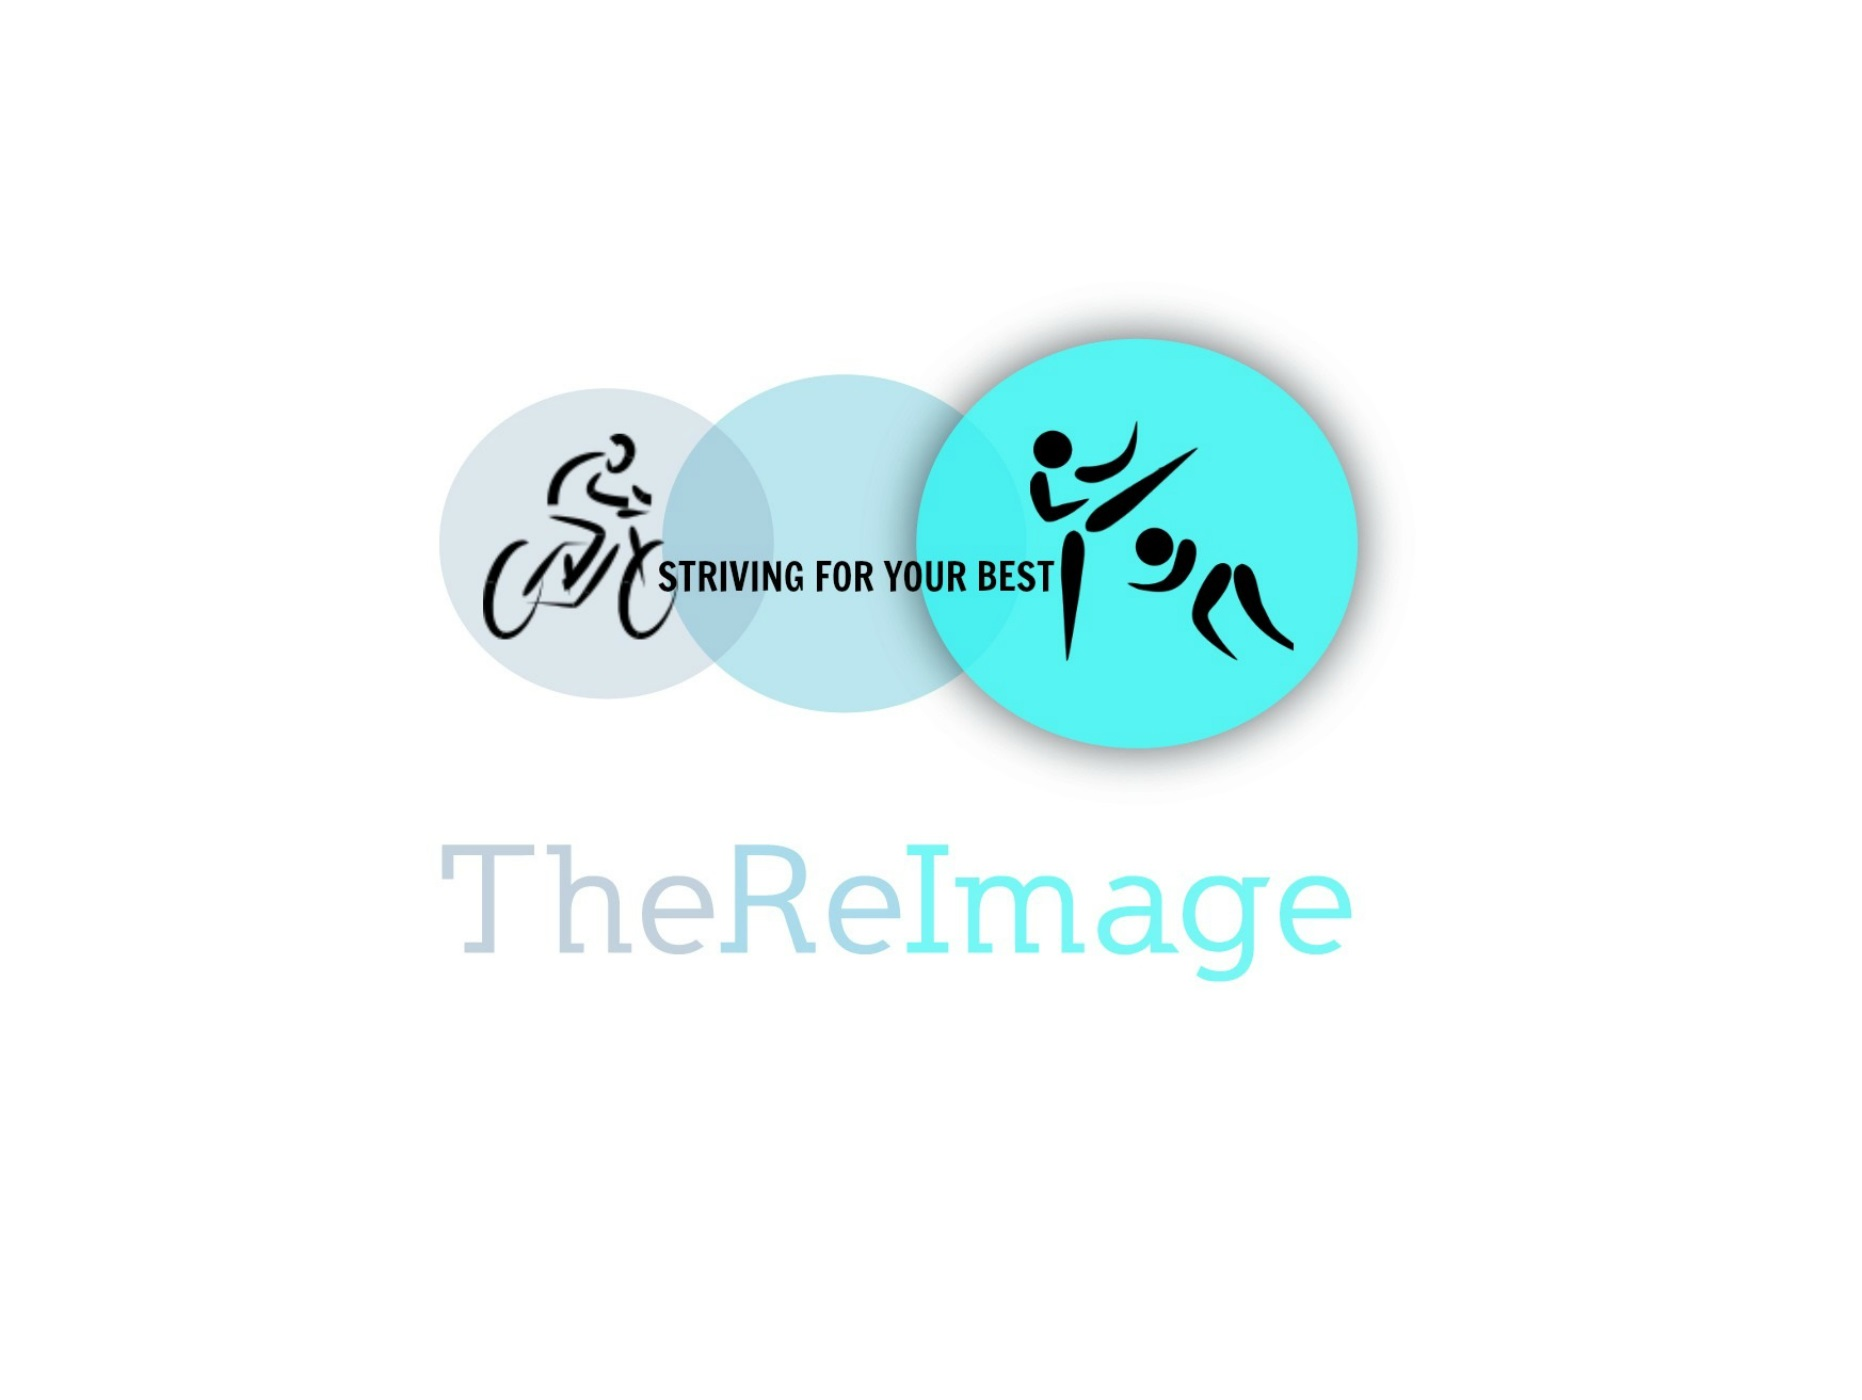 TheReImage Logo including a image of a bicyclist inside the left lightest circle along with two people in a martial arts pose in the right darkest circle both drawn in calligraphy style.